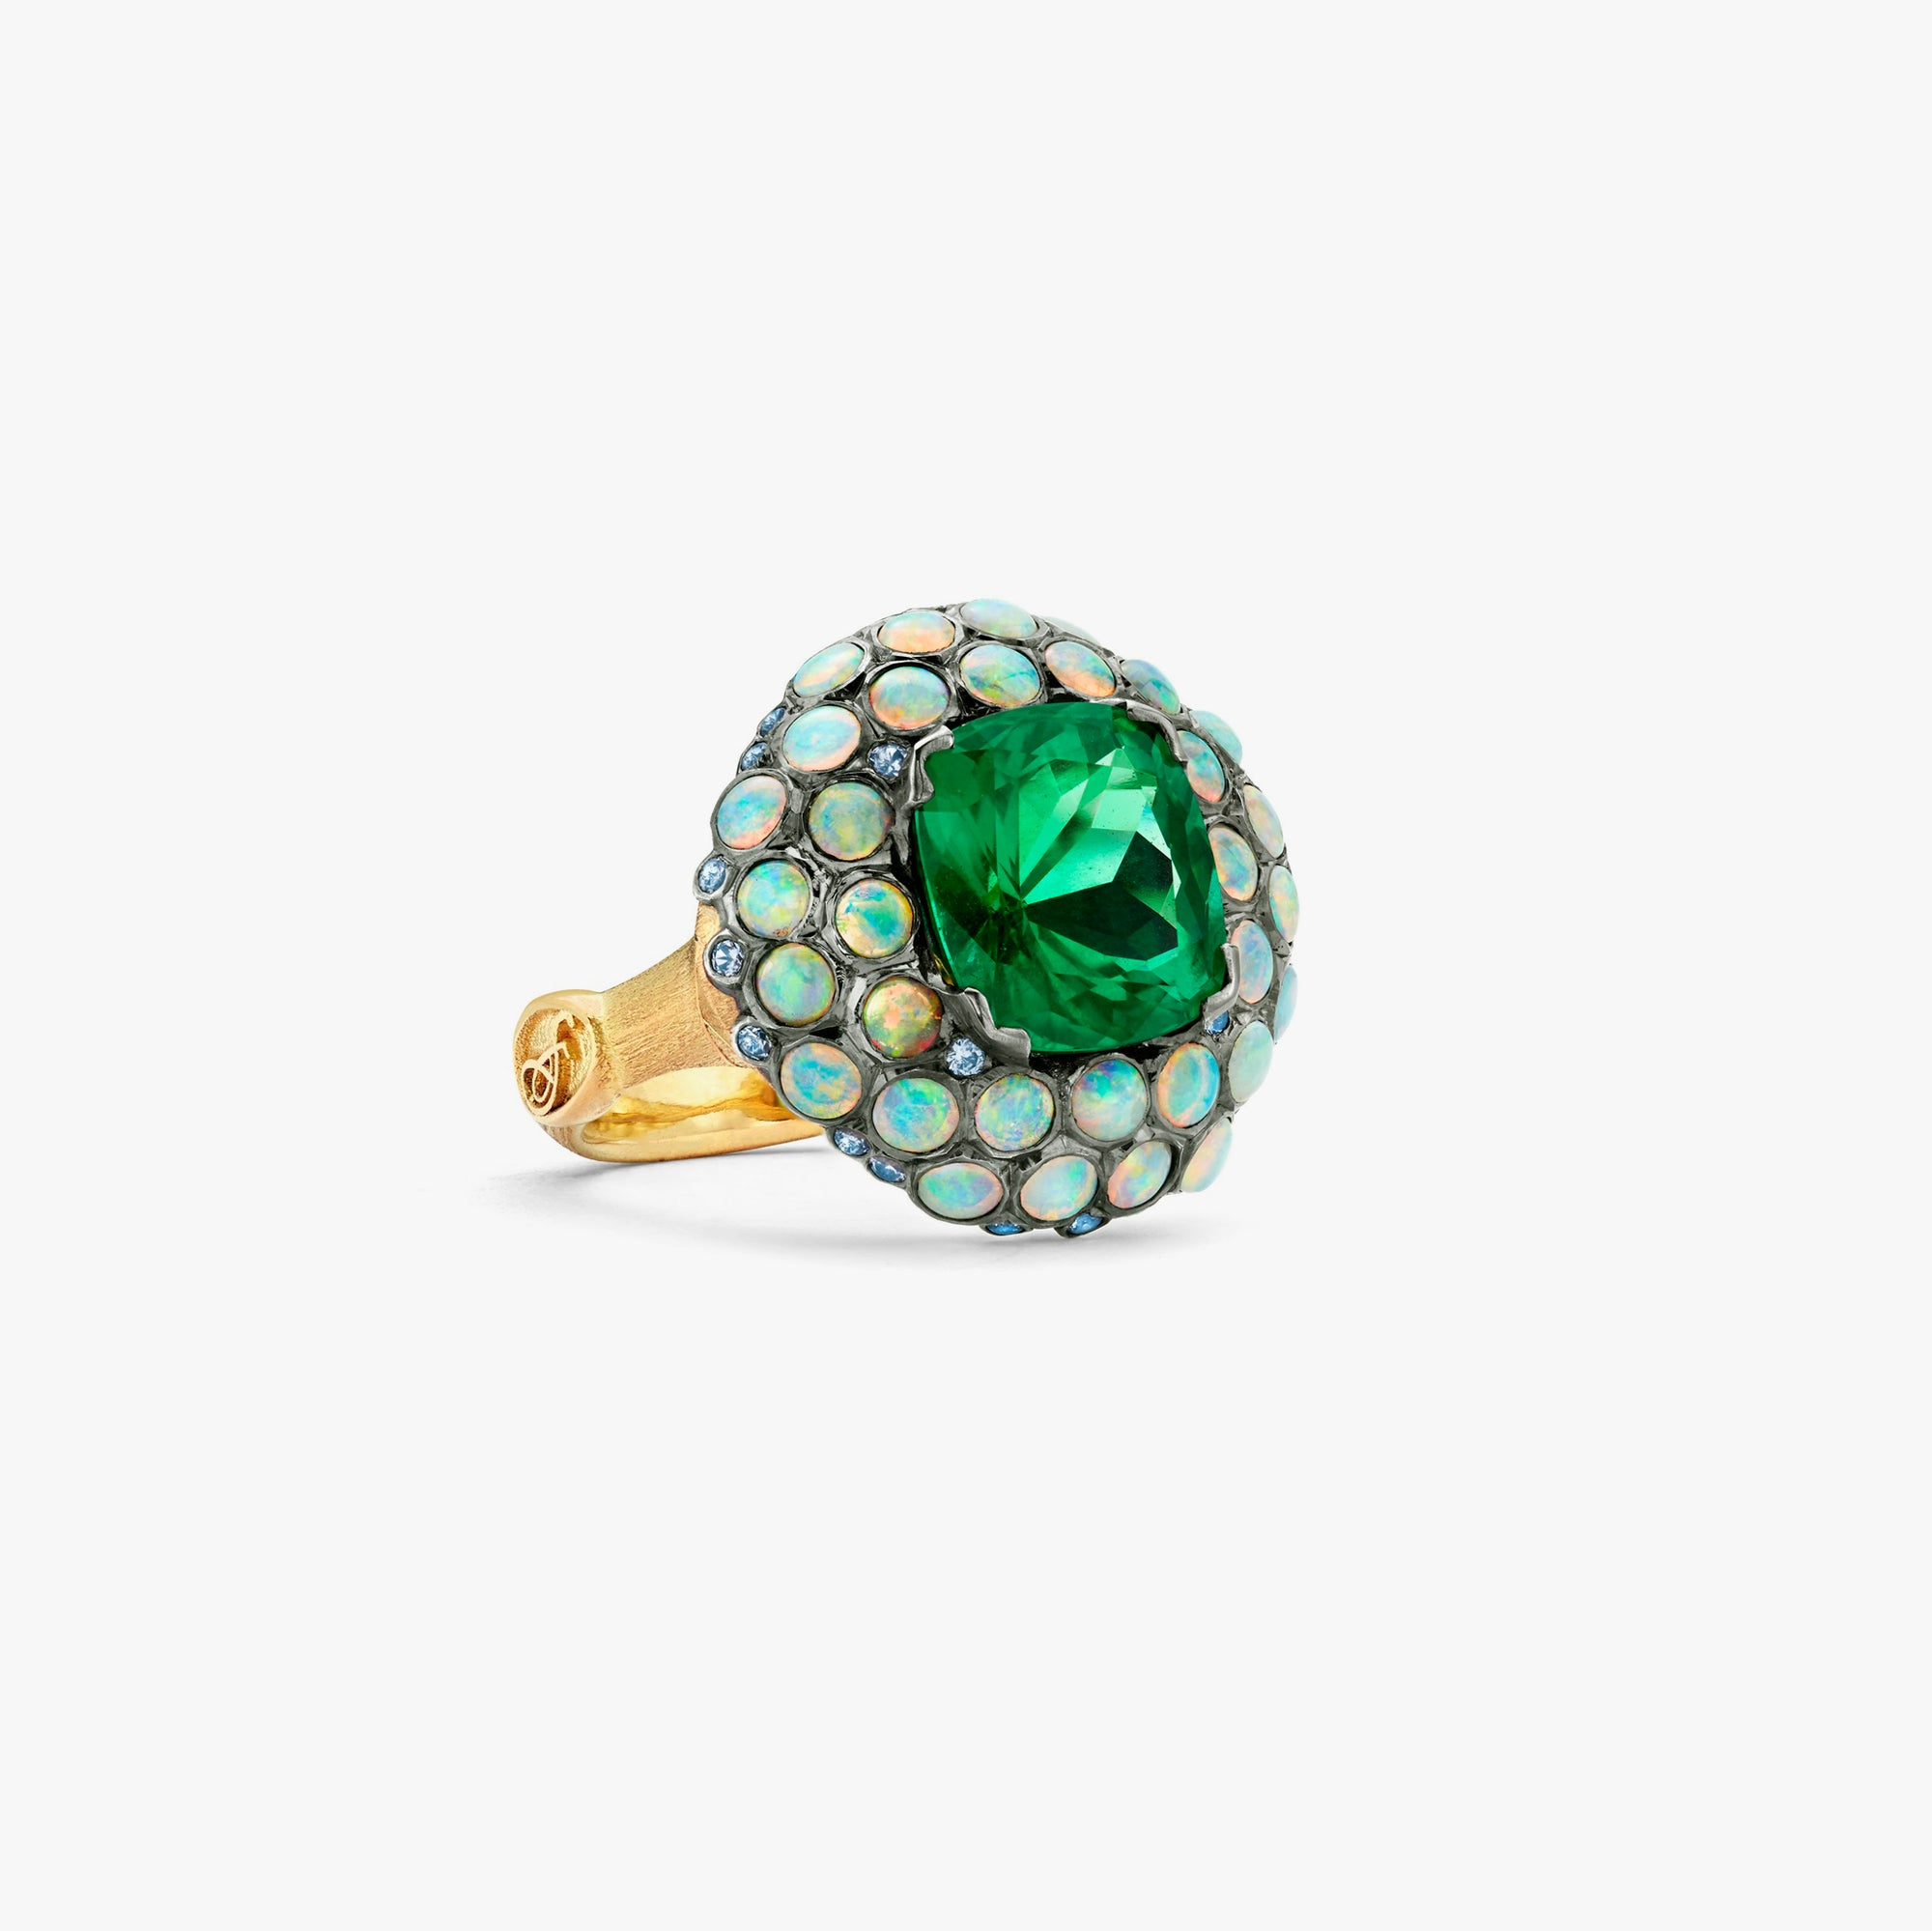 Constellation Ring with Cushion-Cut Emerald Center